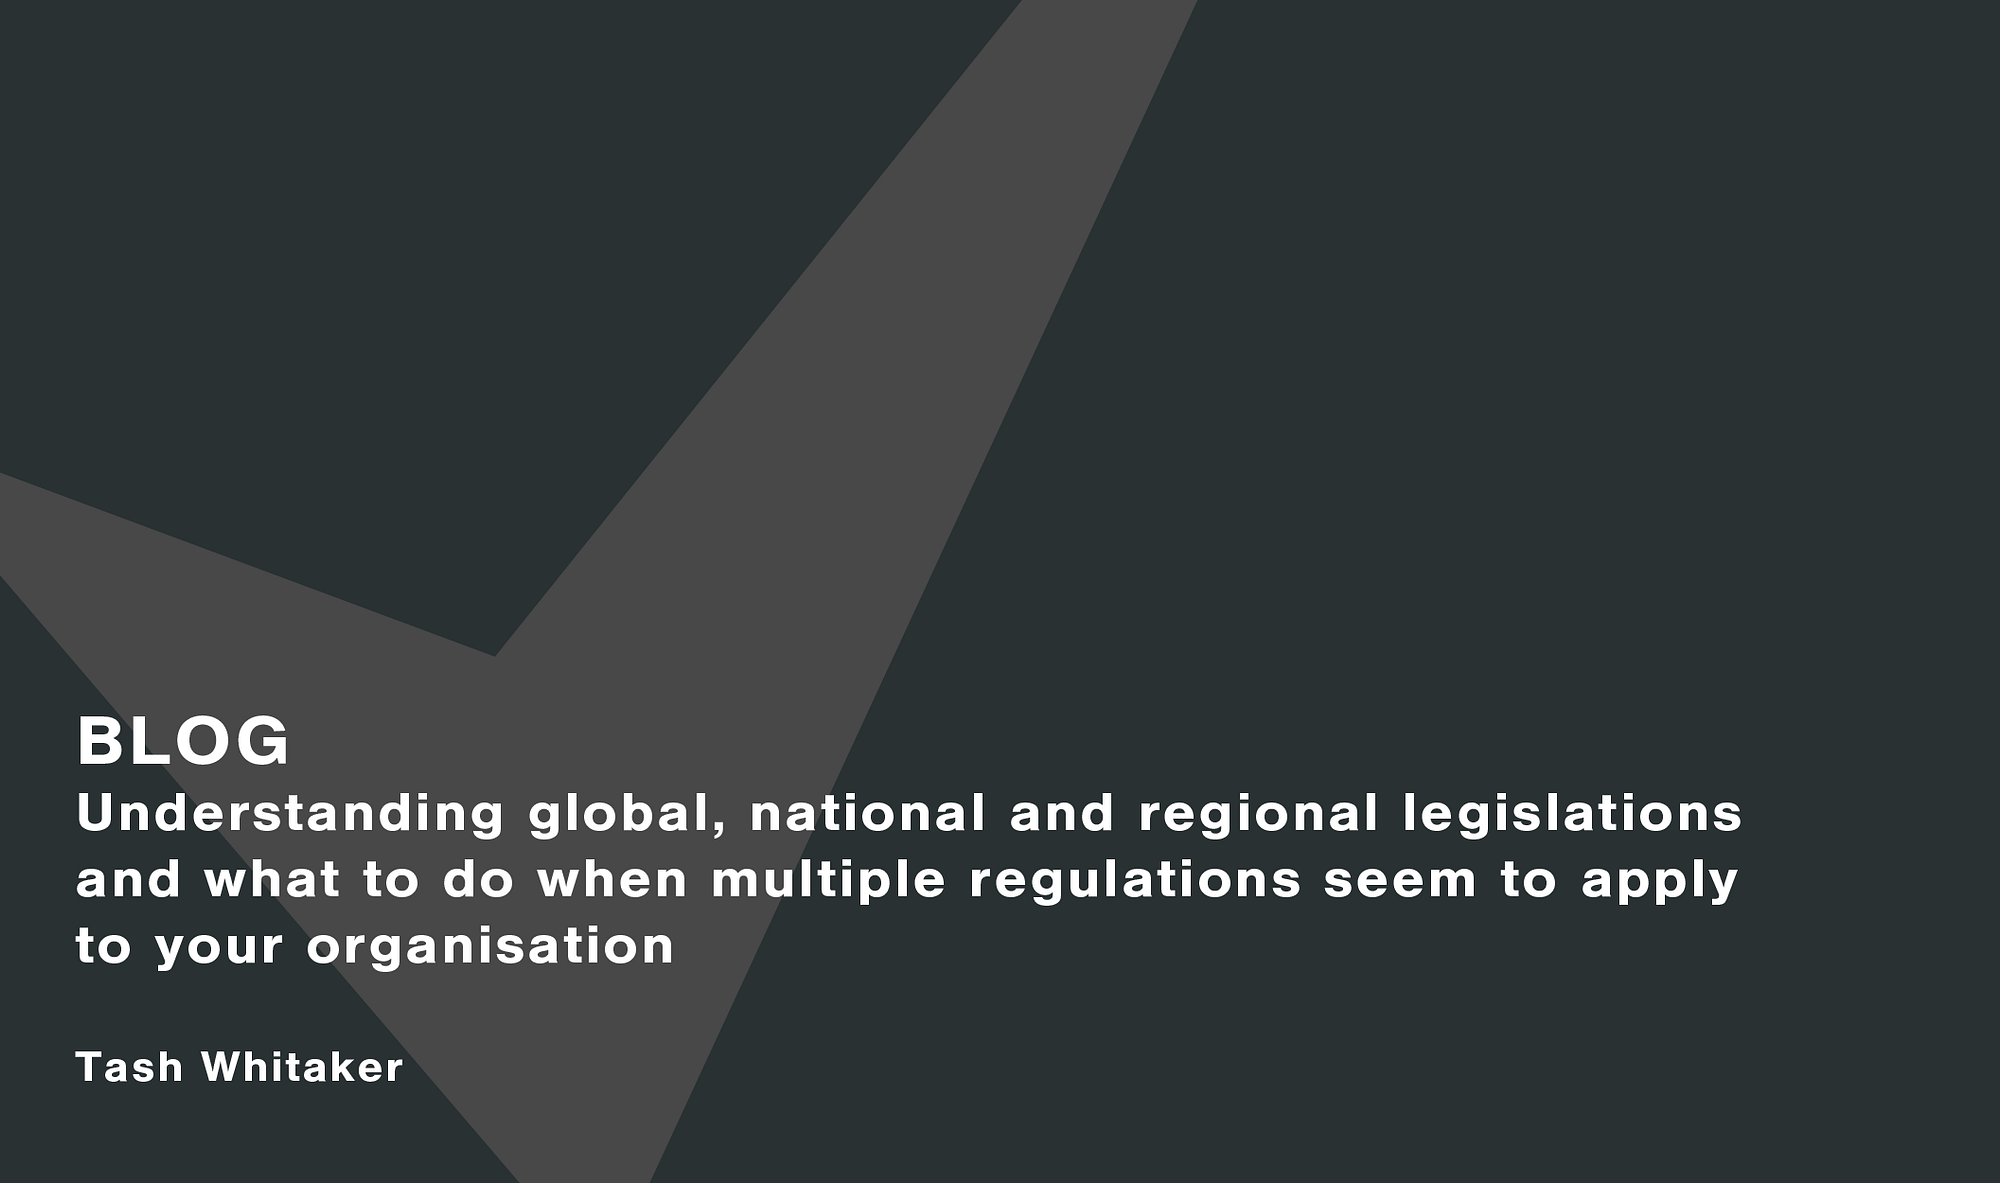 Understanding-global-national-and-regional-legislations-and-what-to-do-when-multiple-regulations-seem-to-apply-to-your-organisation